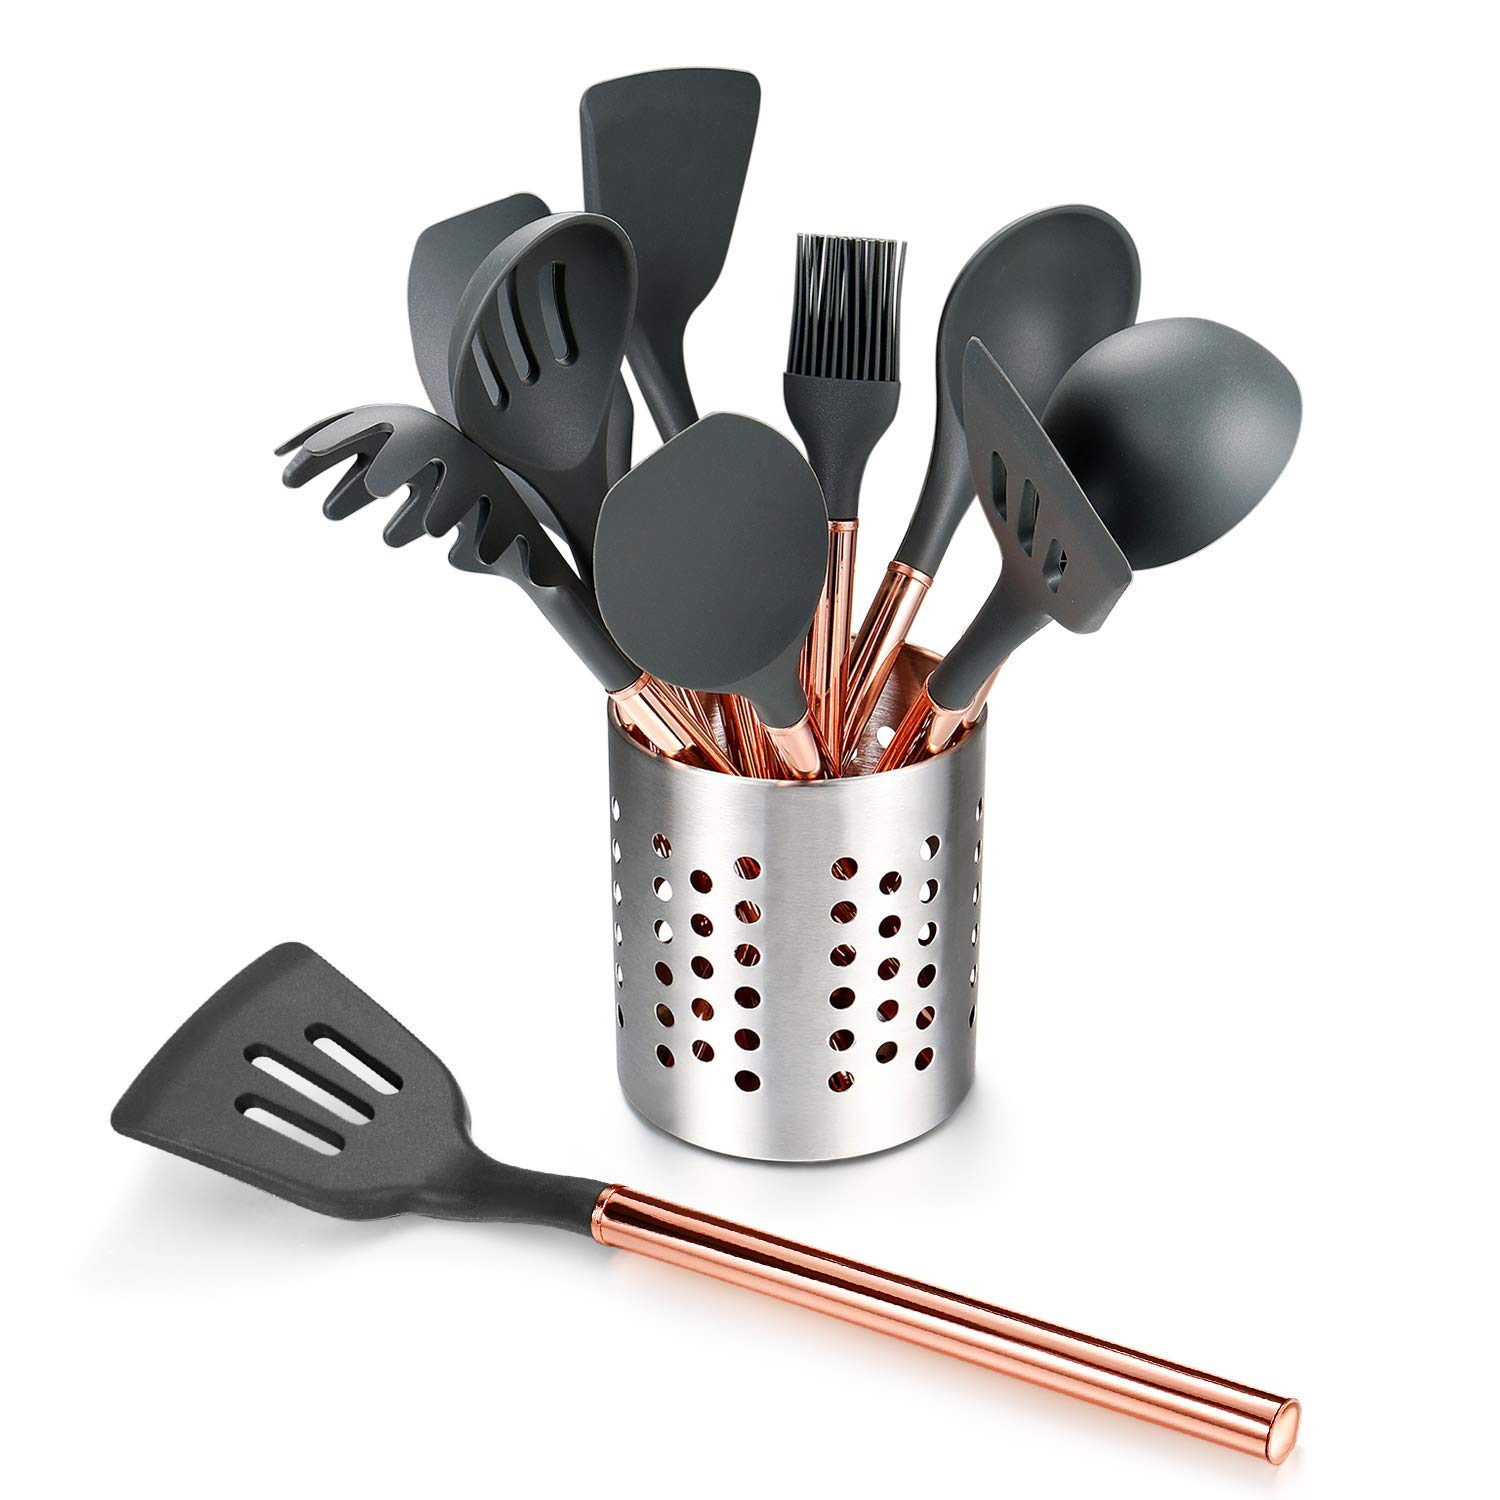 Rose Gold 10 Peice Silicone Kitchen Cooking Utensils Set